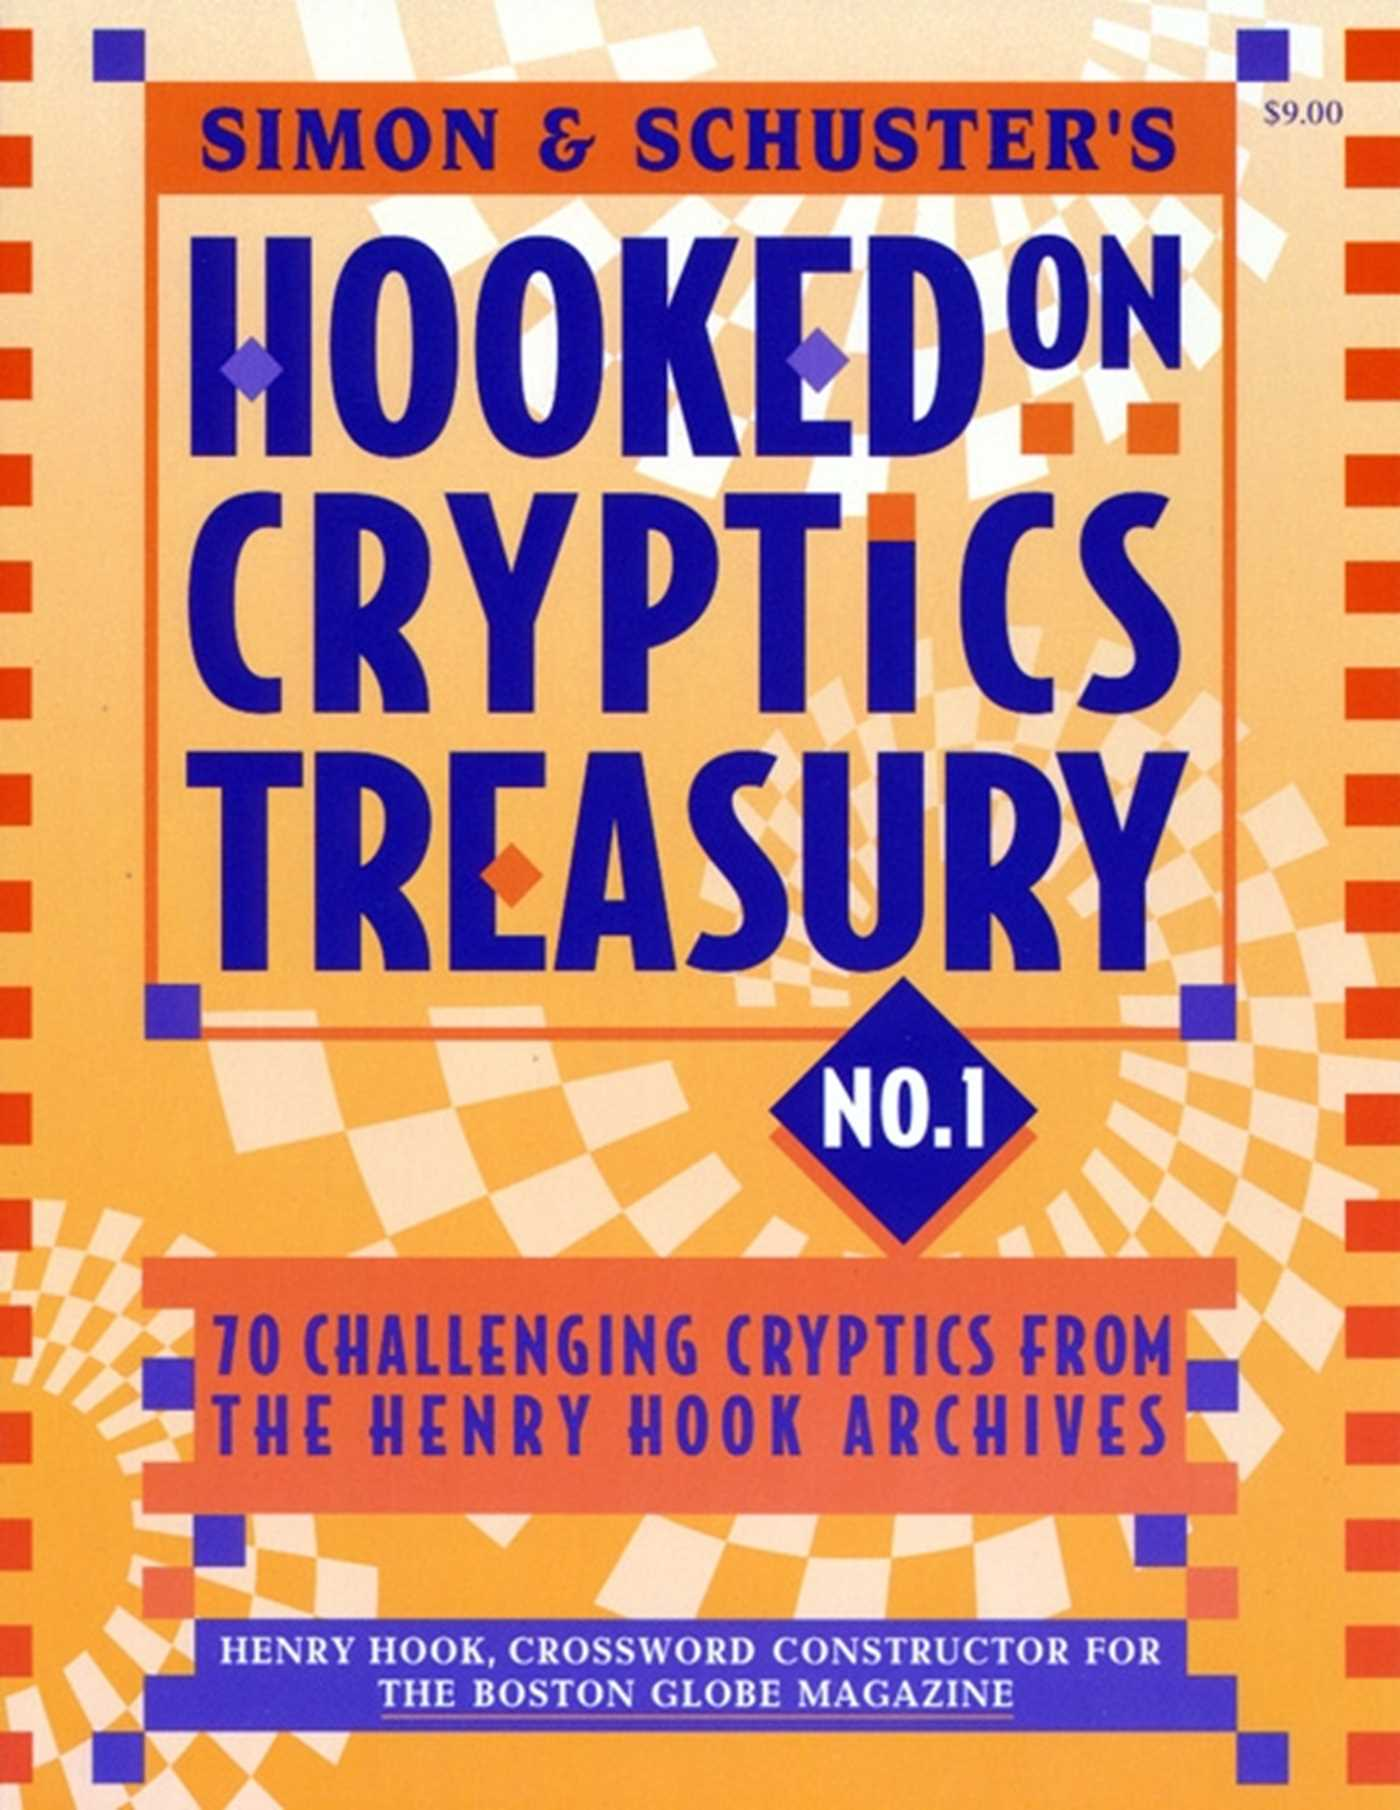 simon and schuster hooked on cryptics treasury 1 hook henry